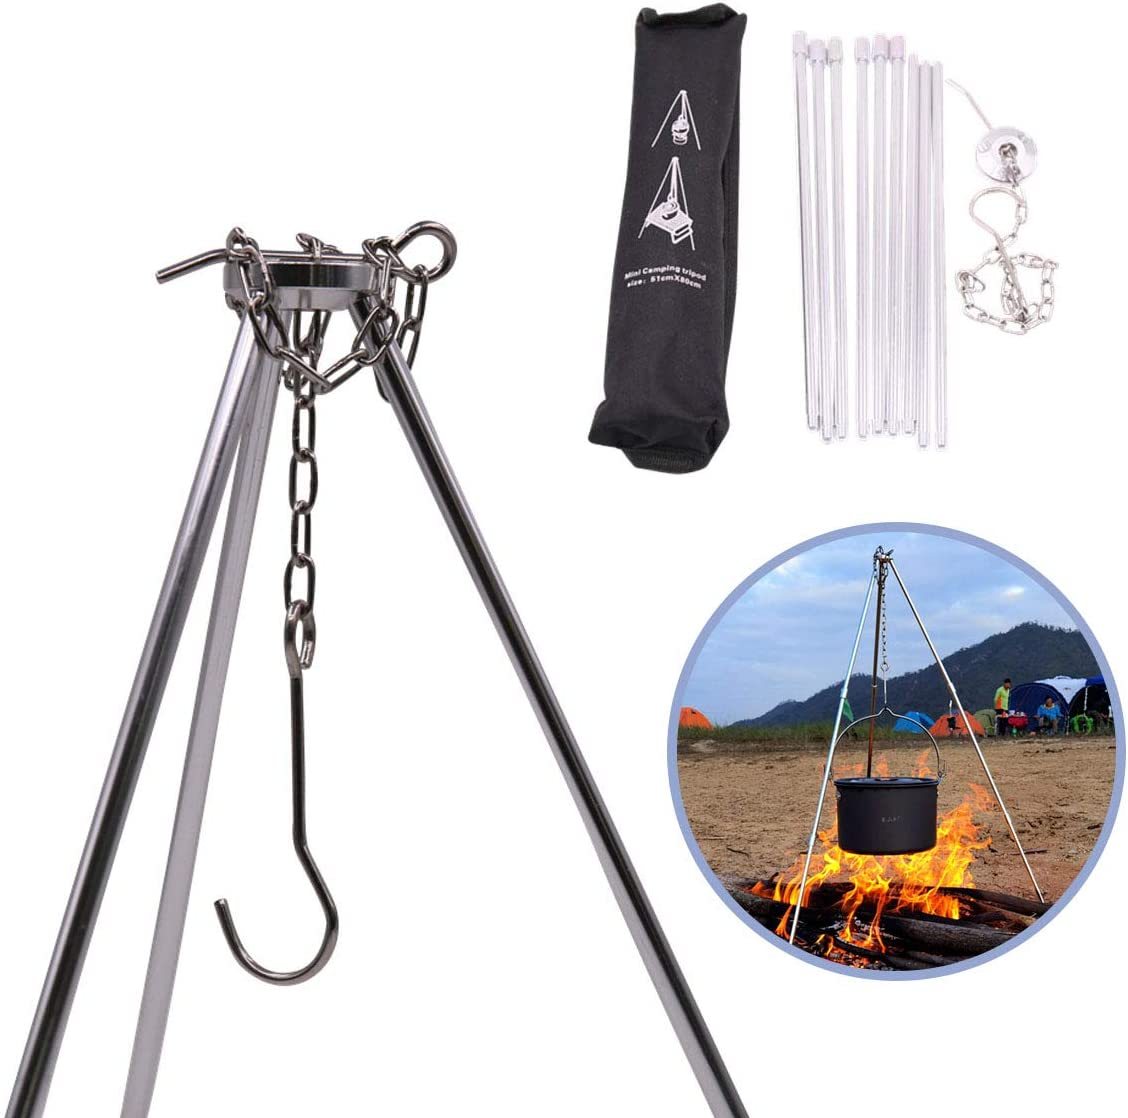 Rayeeley Portable Mini Camping Tripod Campfire Cooking Dutch Oven Tripod Adjustable Tripod Cooker Campfire Grill Stand Tripod Set Cooking Lantern Hanging Pot Holder with Storage Bag